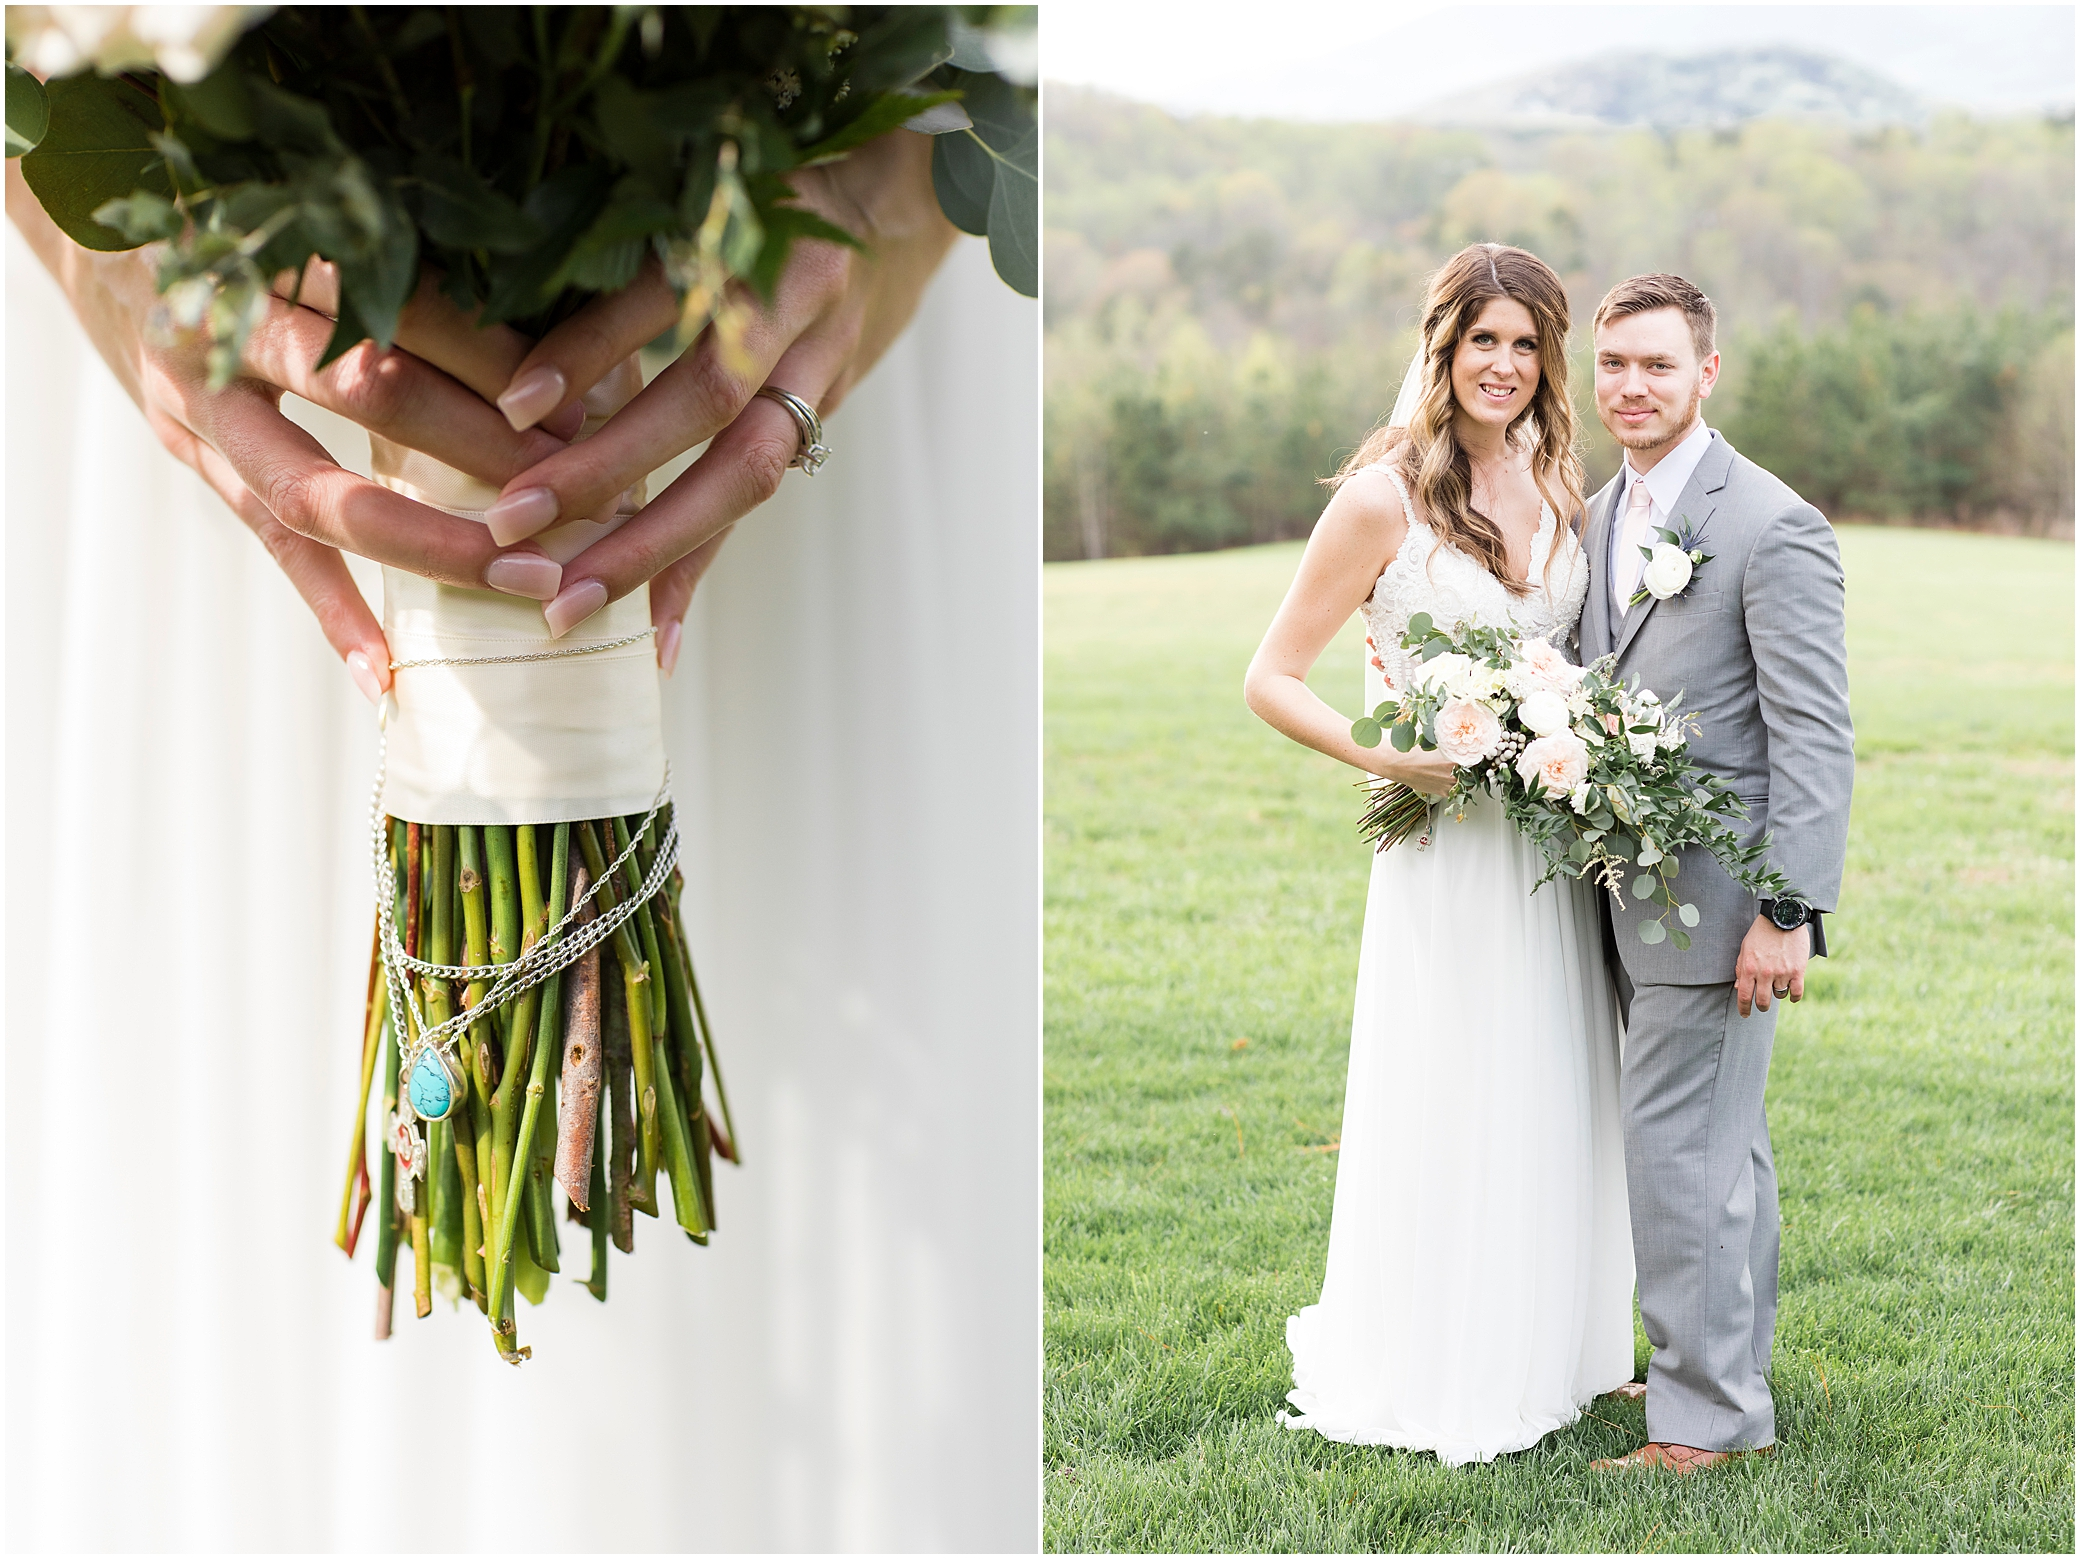 bride and groom portrait at sierra vista wedding, remembrance necklaces wrapped around bridal bouquet